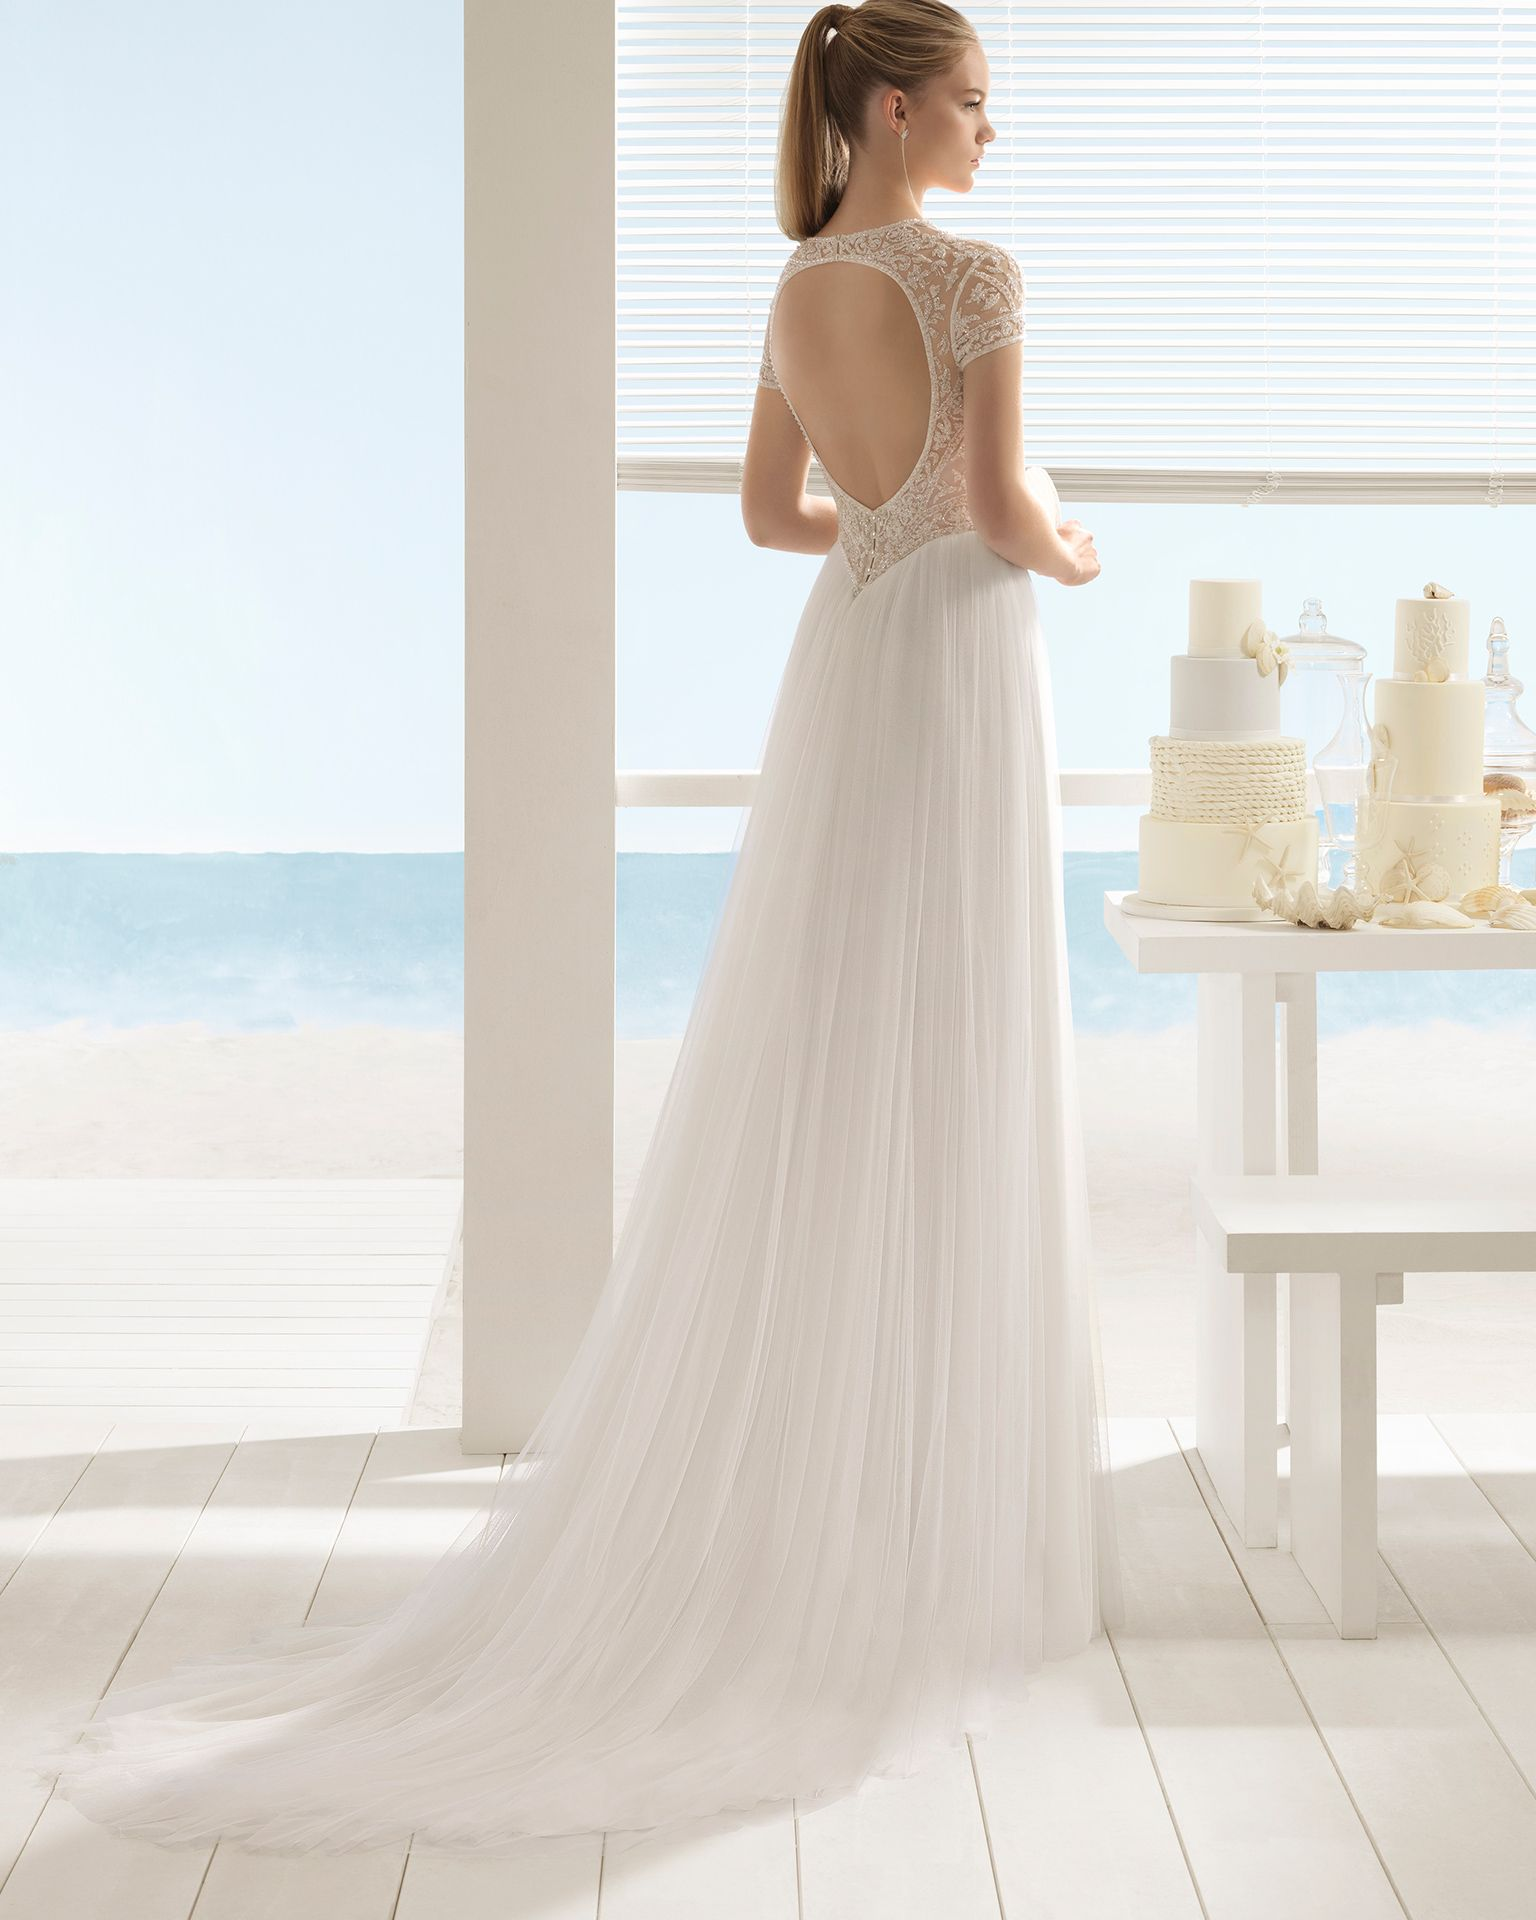 Aline beaded lace and tulle wedding dress with short sleeves and